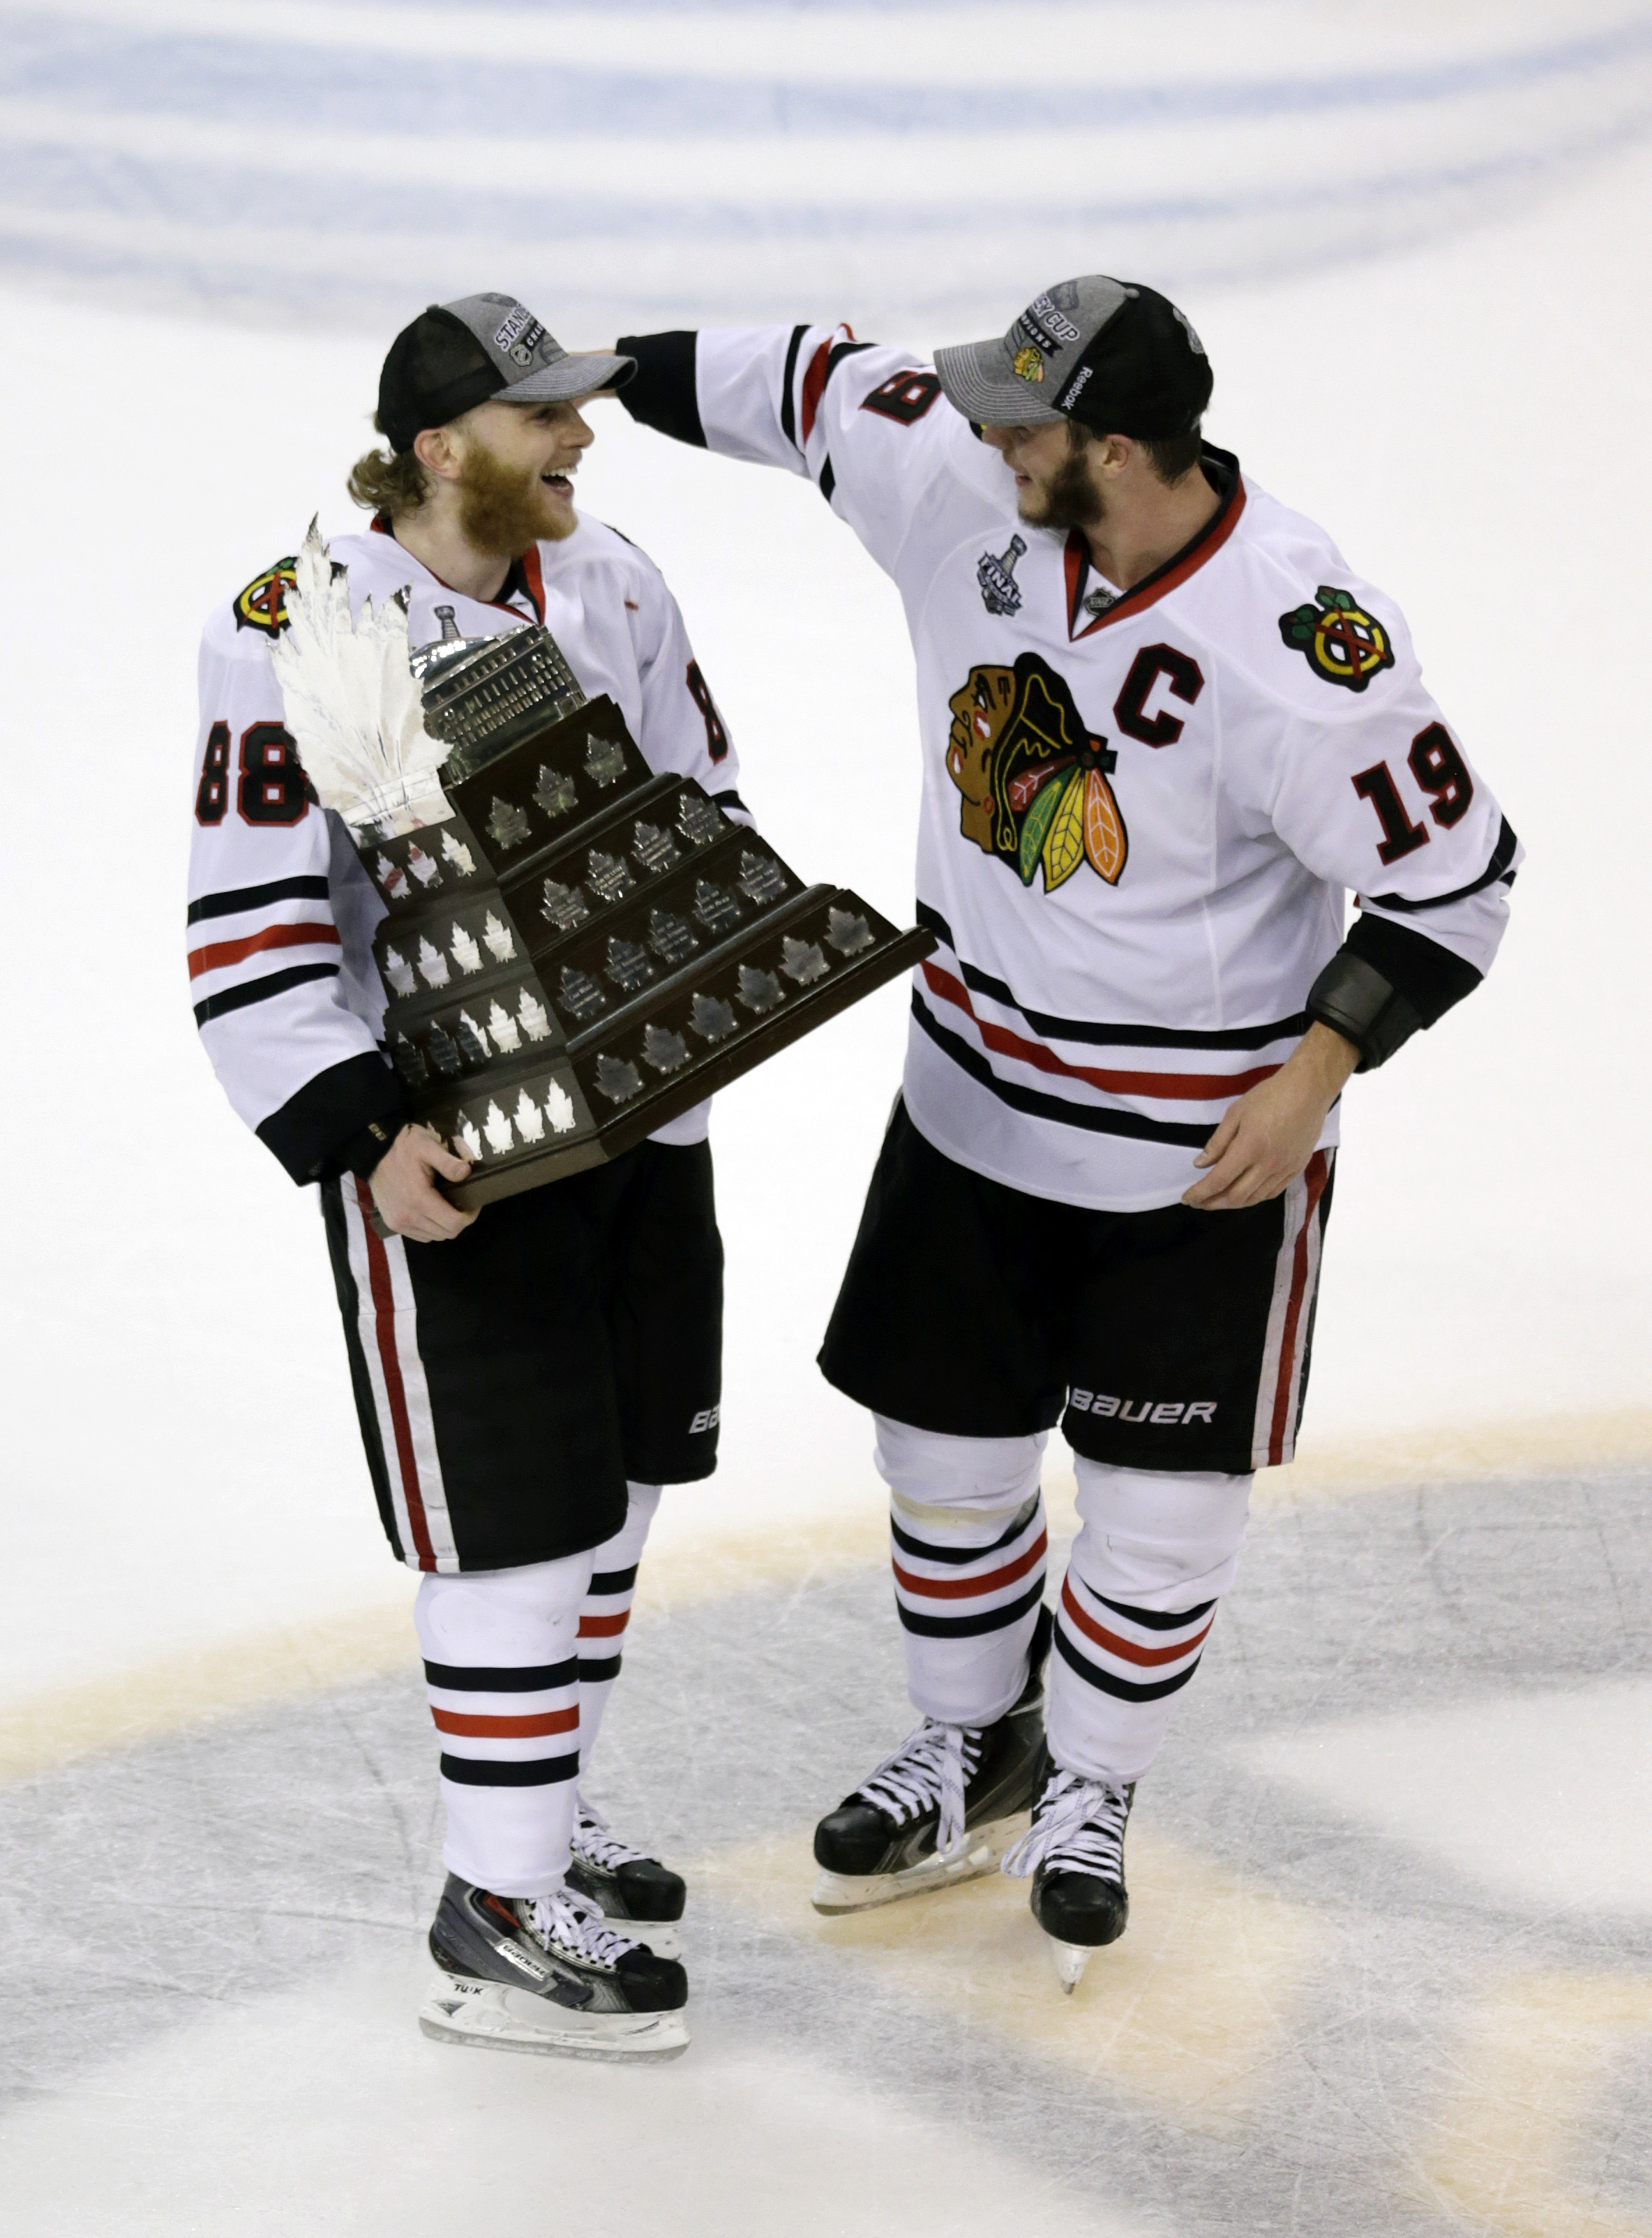 Chicago star Patrick Kane, left,and Jonathan Toews have won two Stanley Cups together and each now has earned a Conn Smythe Trophy as playoff MVP the past four season. During Kane's six seasons, he's averaged 27 goals and 78 points during the regular season has has 71 points in 74 career playoff games. (AP Photo/Charles Krupa)